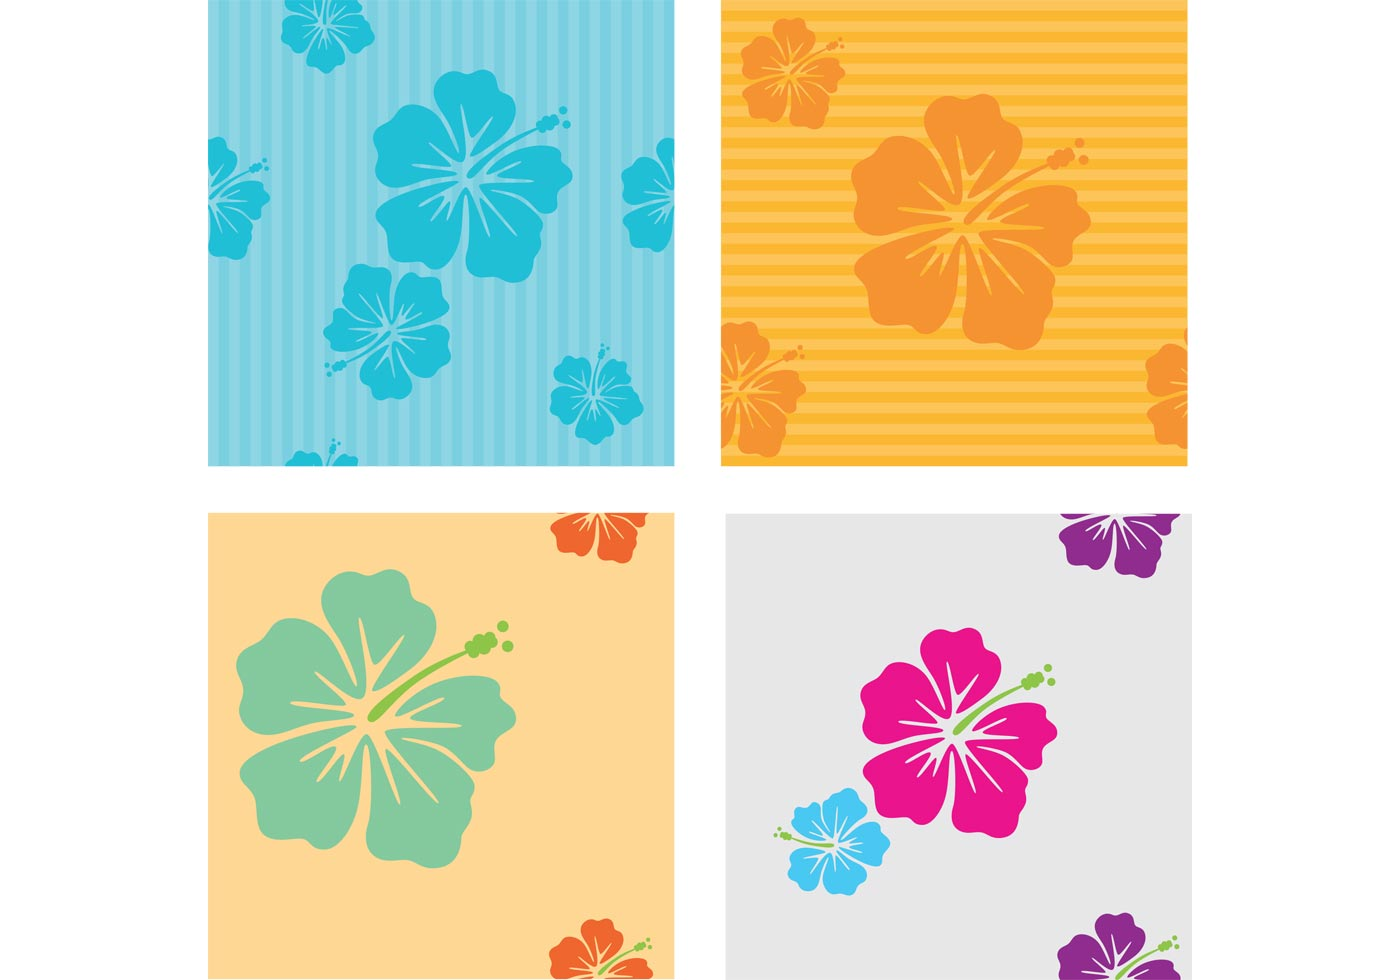 Hawaiian flower vector patterns download free vector art stock hawaiian flower vector patterns download free vector art stock graphics images izmirmasajfo